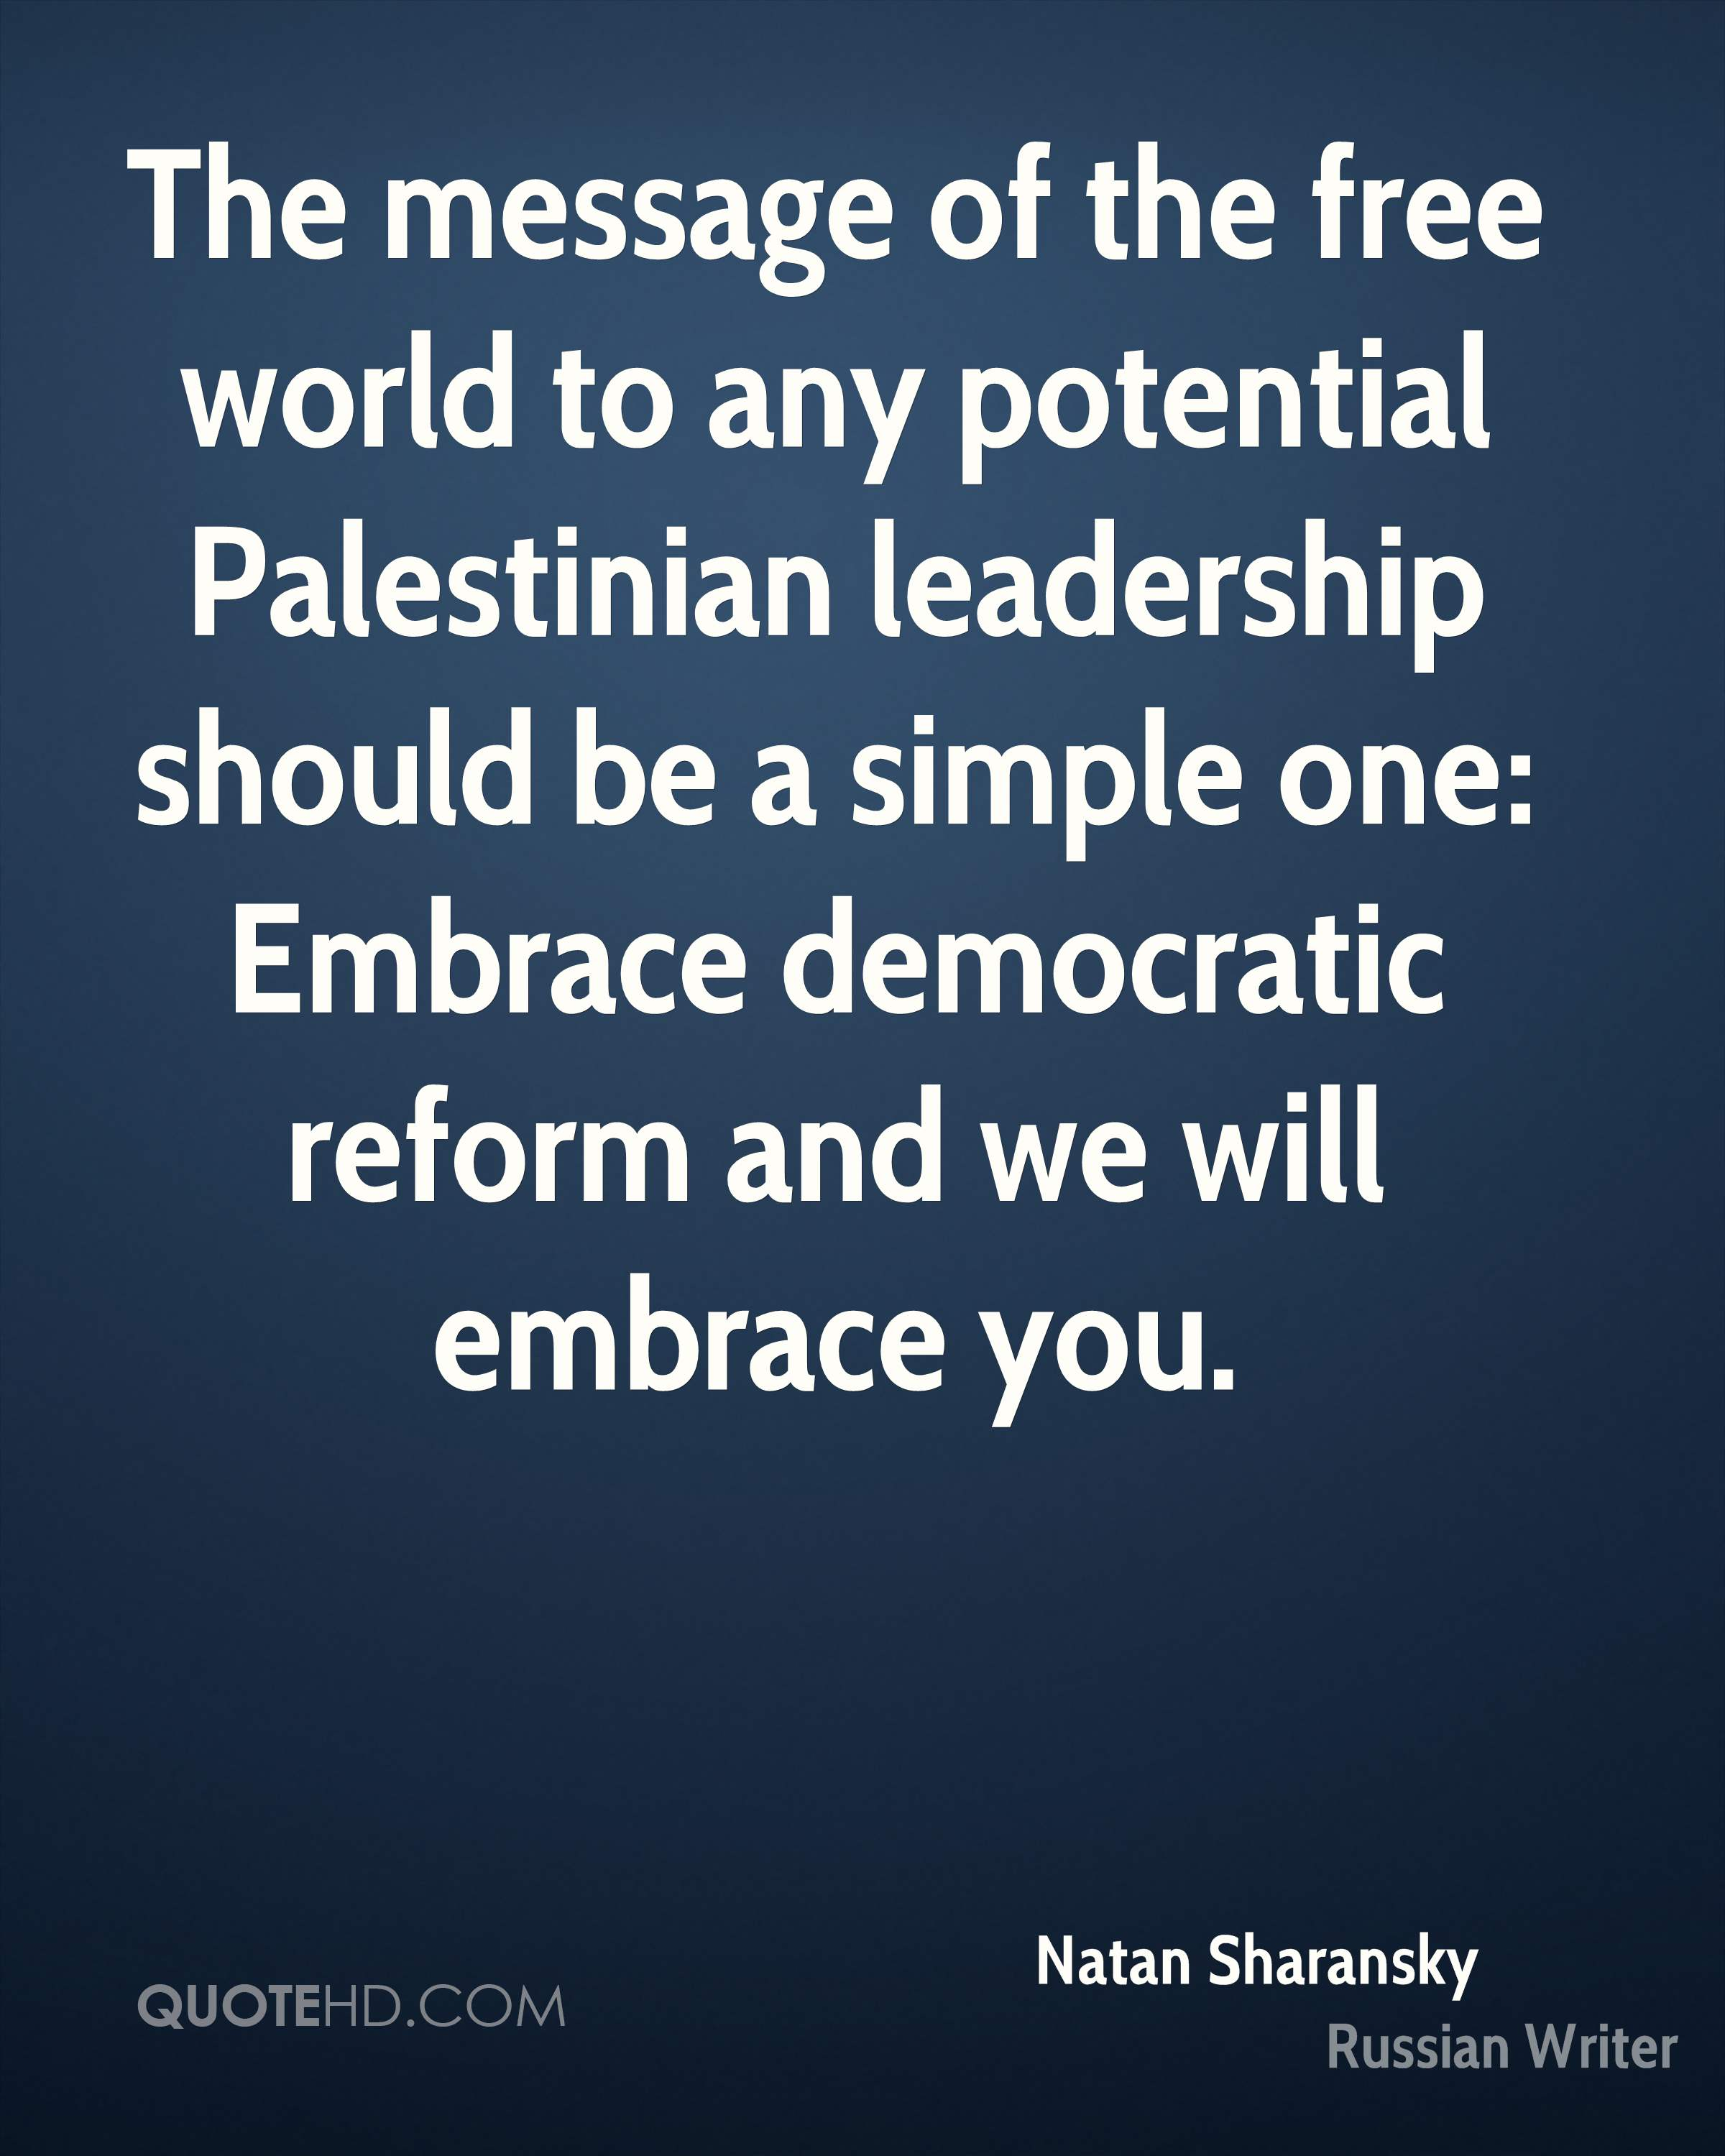 The message of the free world to any potential Palestinian leadership should be a simple one: Embrace democratic reform and we will embrace you.